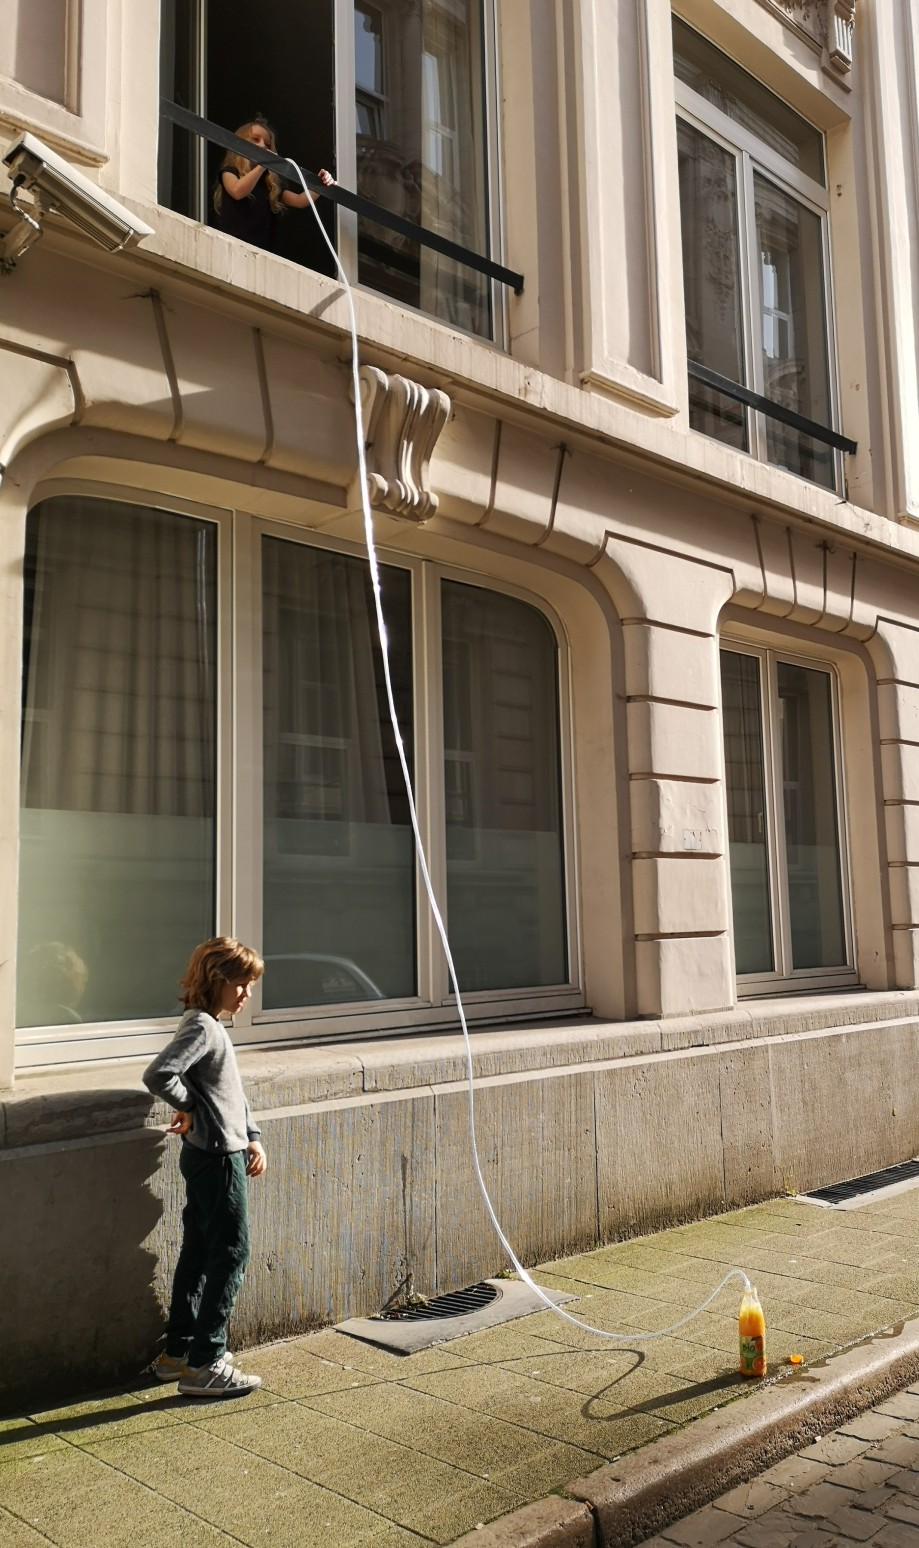 Physics Experiments: A 6 meter long straw | antwerpenhomeschooling